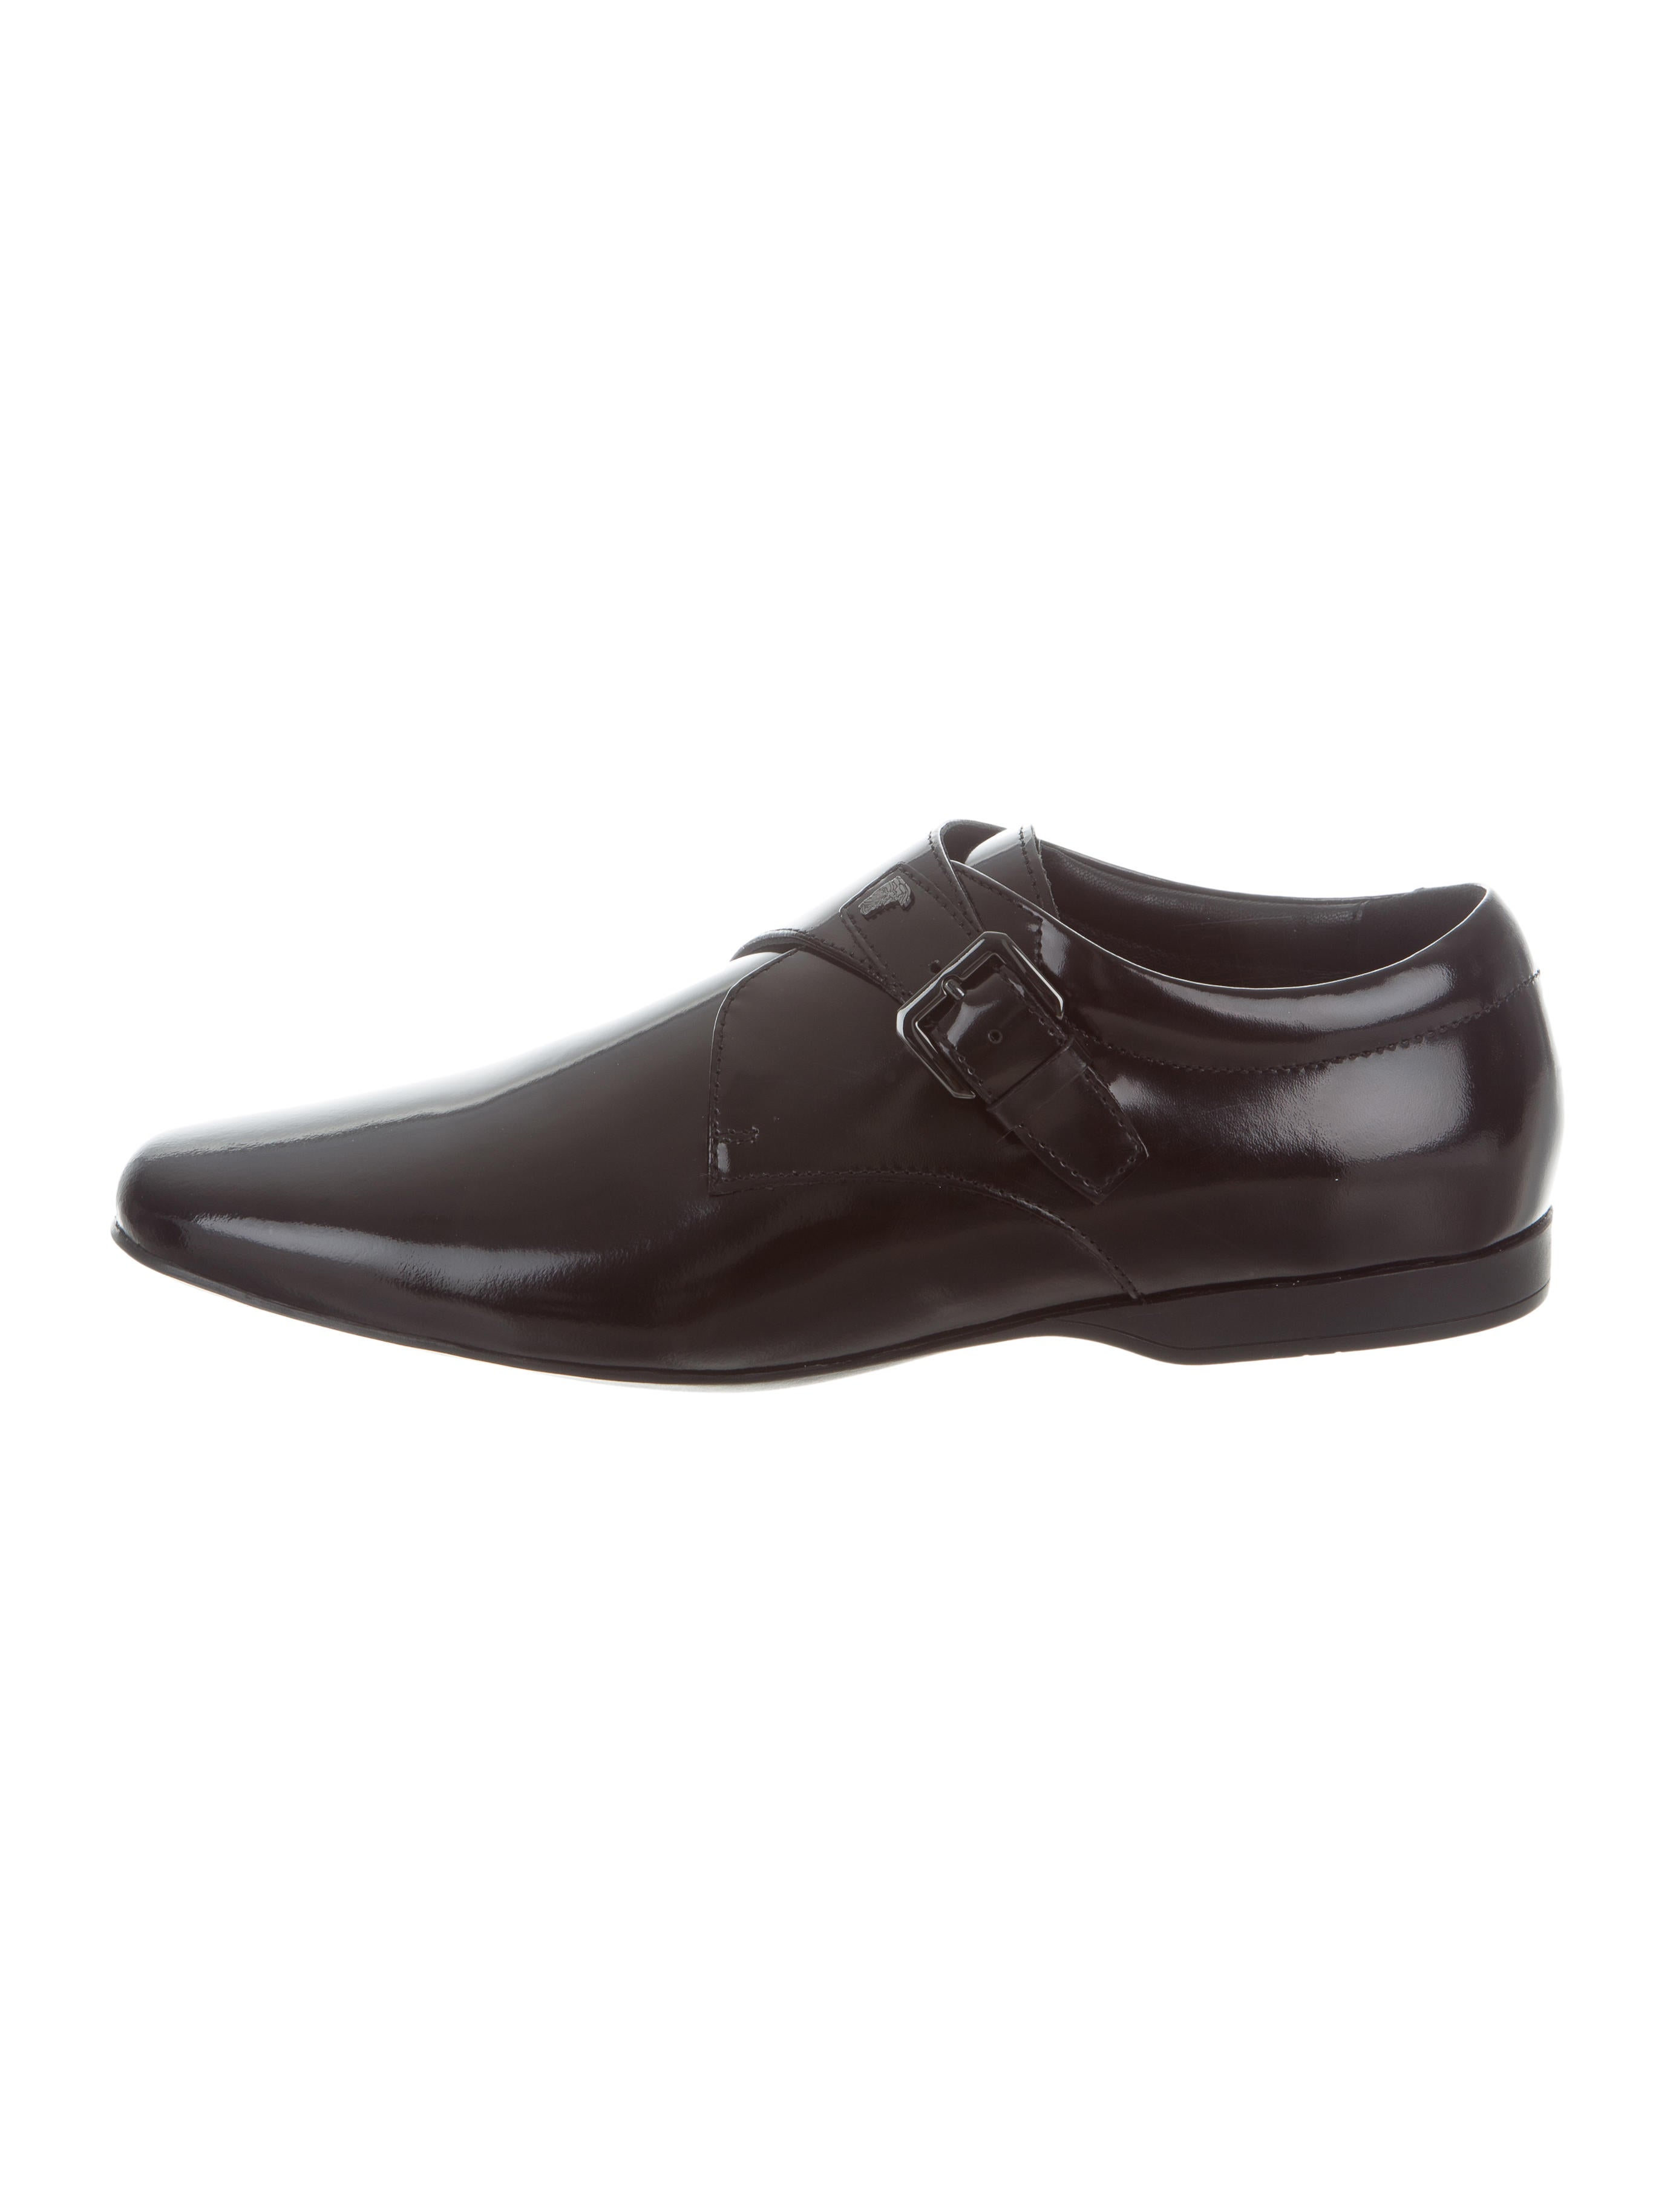 Versace Collection Leather Monk Strap Shoes w Tags  : WV9218531enlarged from www.therealreal.com size 2770 x 3655 jpeg 183kB